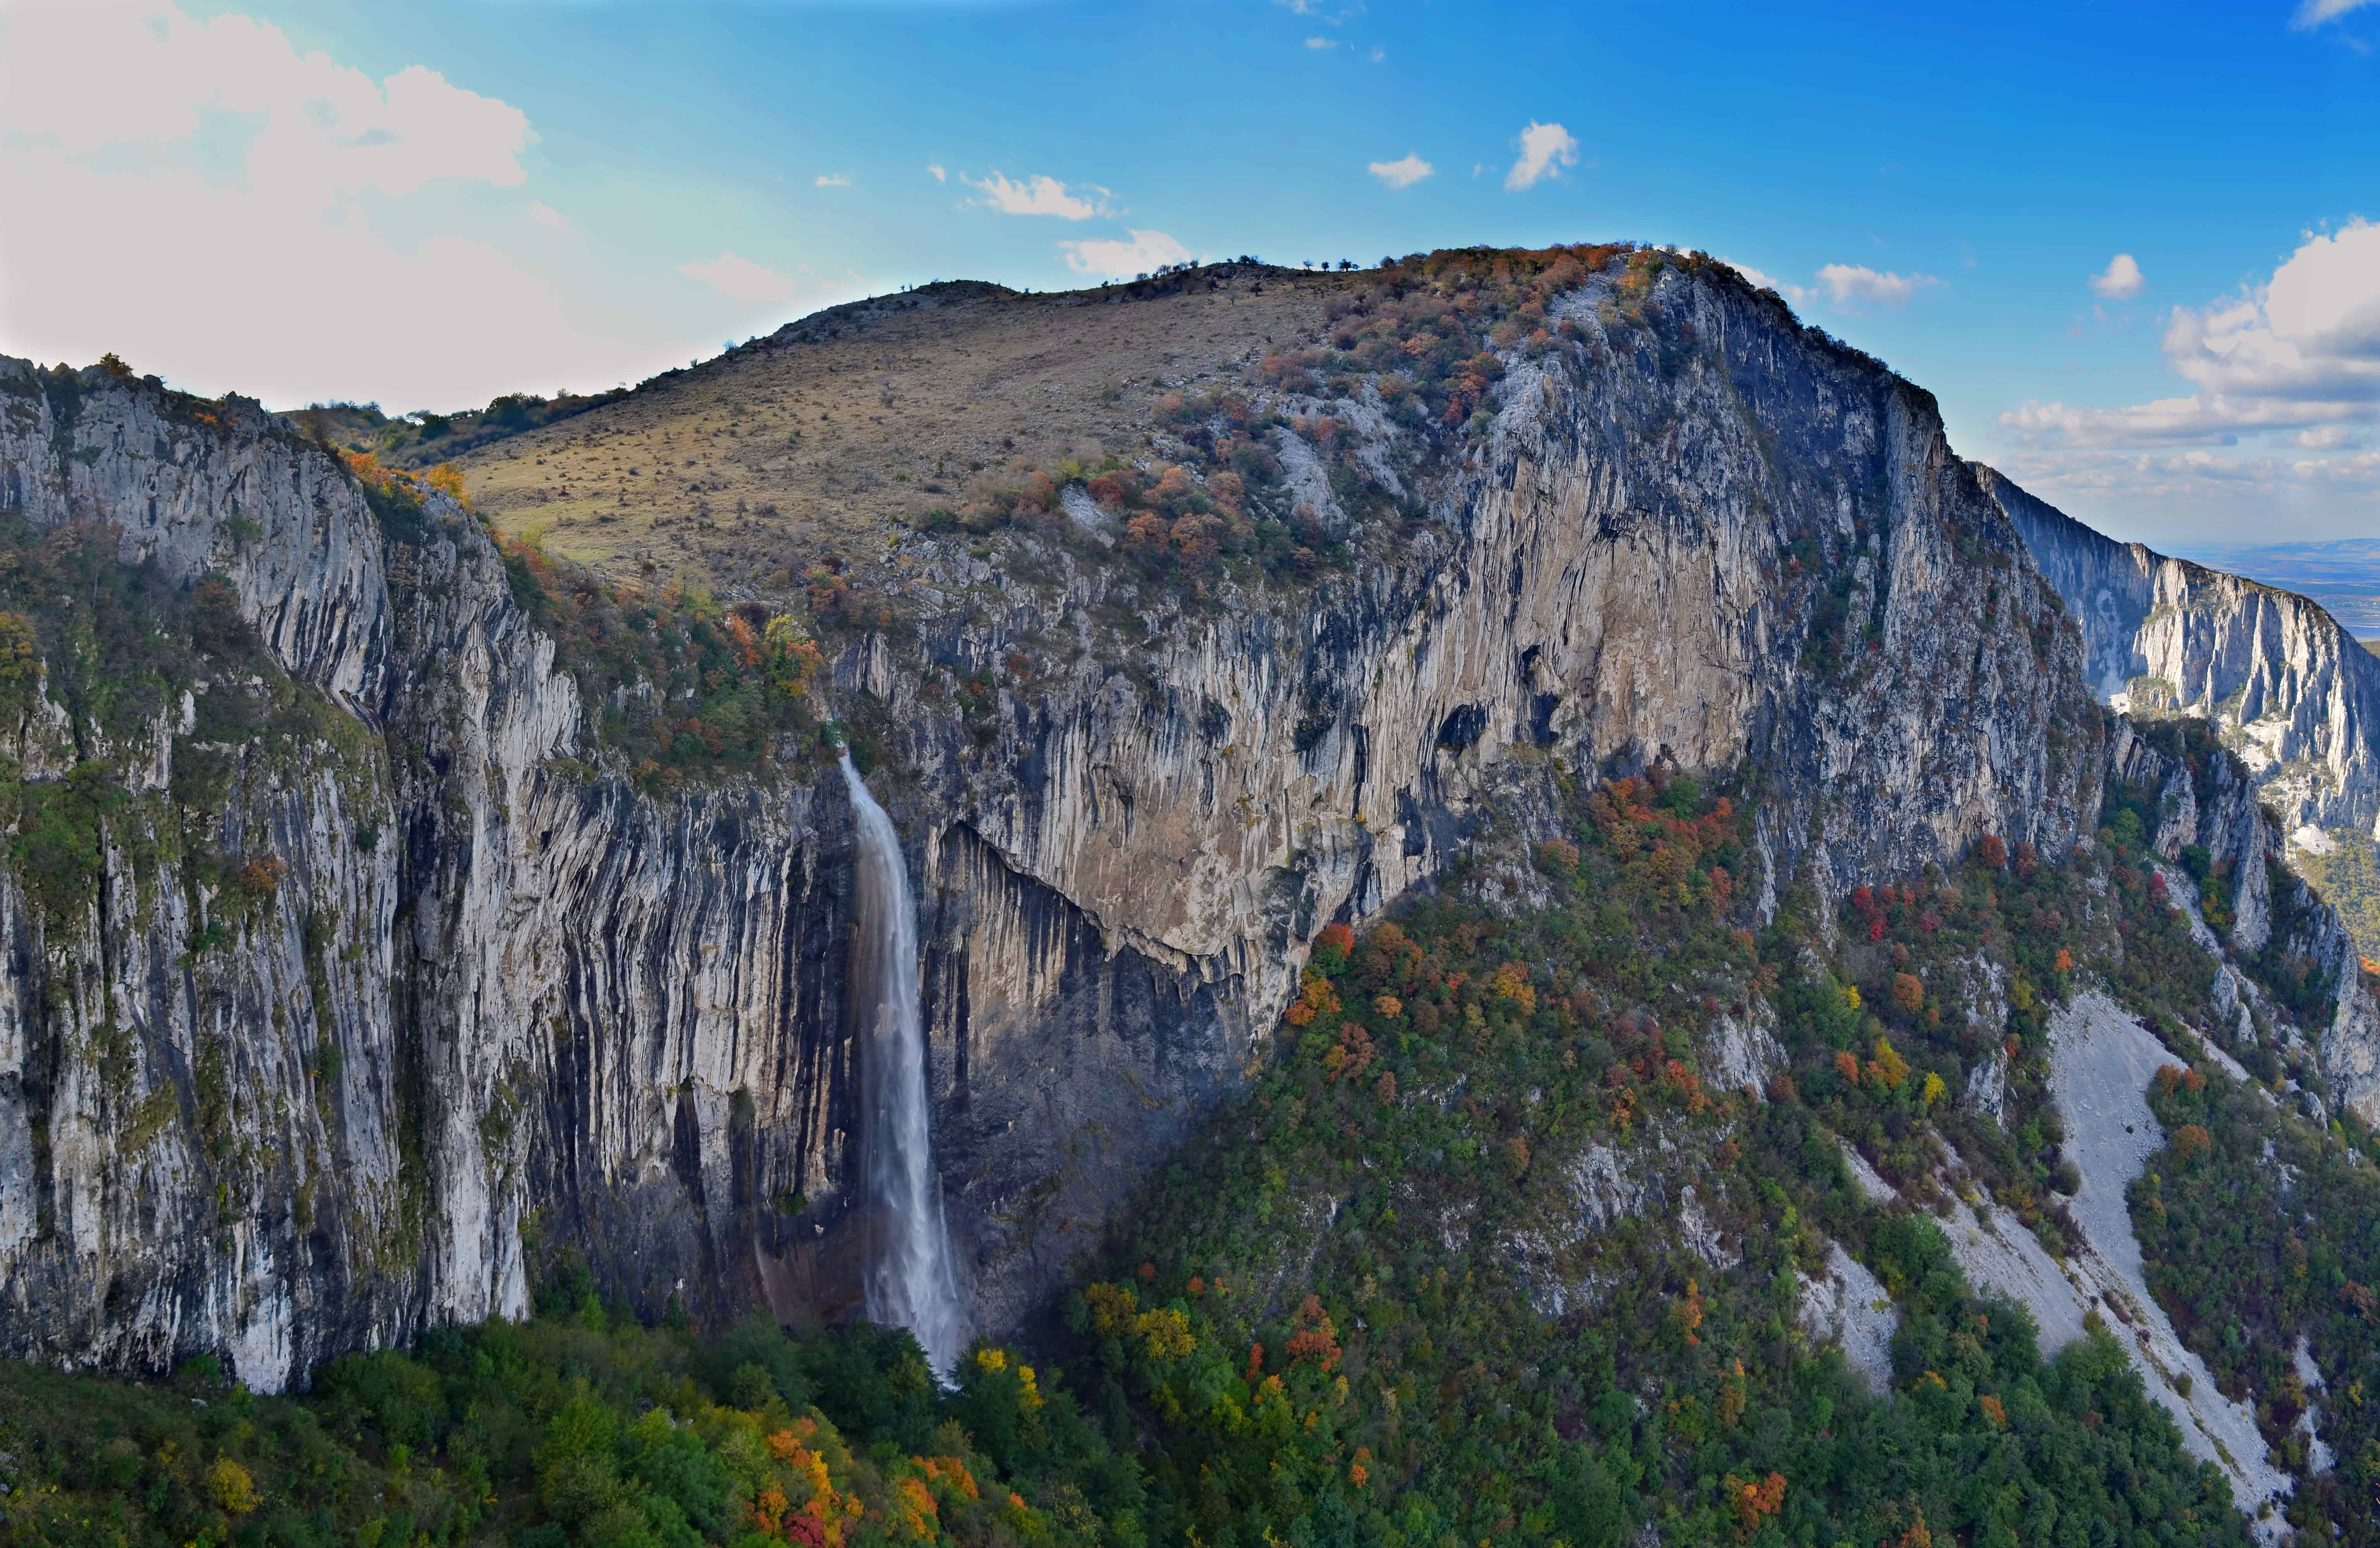 Panorama view of Vrachanski Balkan Nature Park- photo: Vrachanski Balkan Nature Park